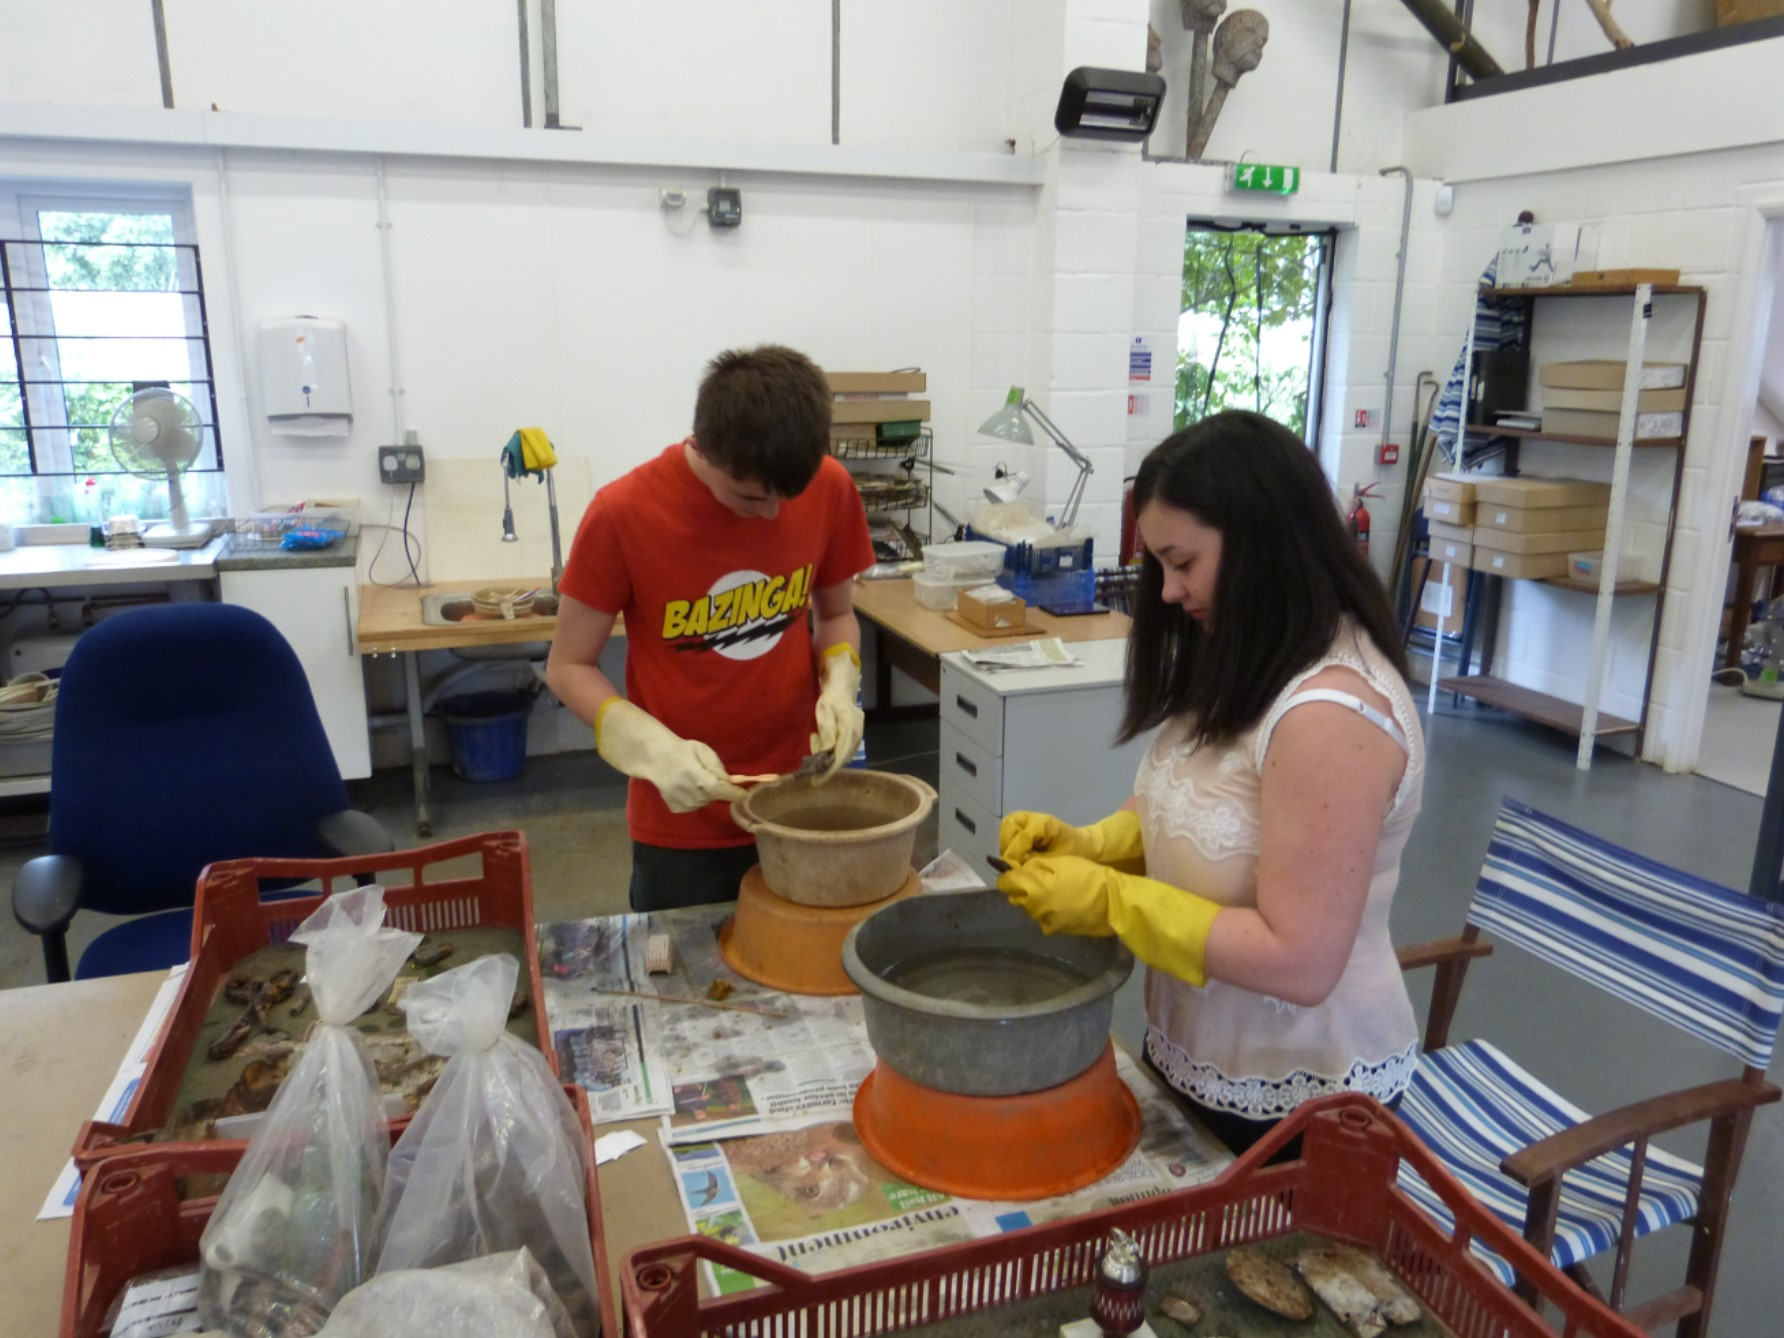 Work experience students carrying out finds processing